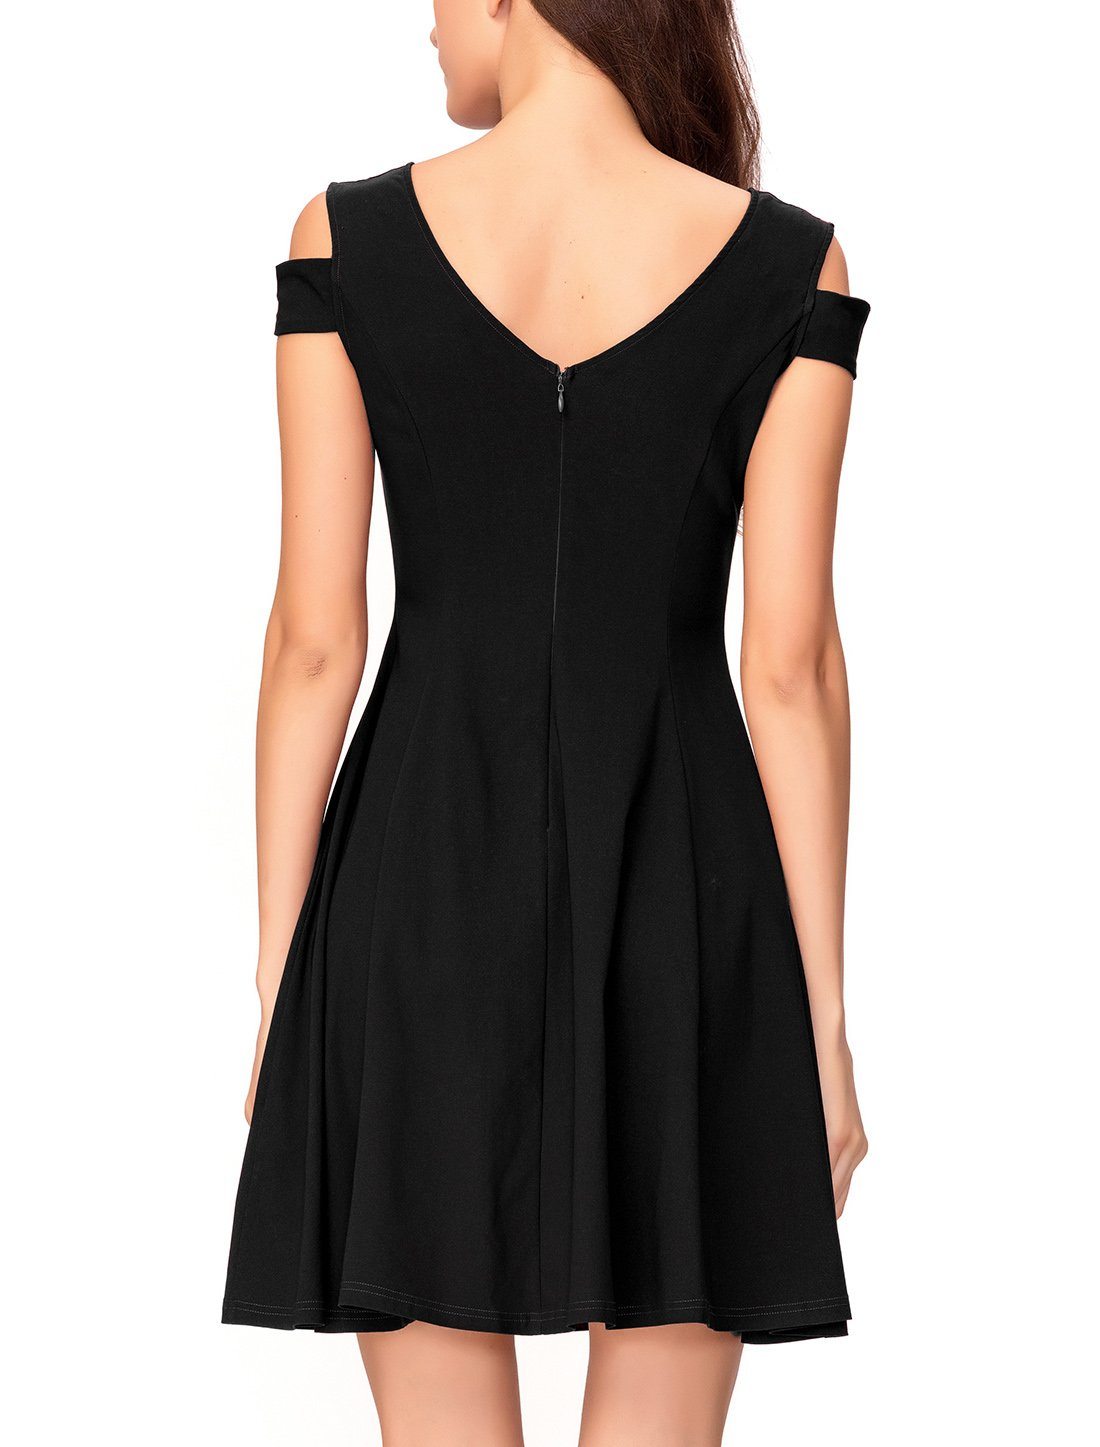 InsNova Cold Shoulder Flare Black Cocktail Dress for Women Evening Party by InsNova (Image #3)